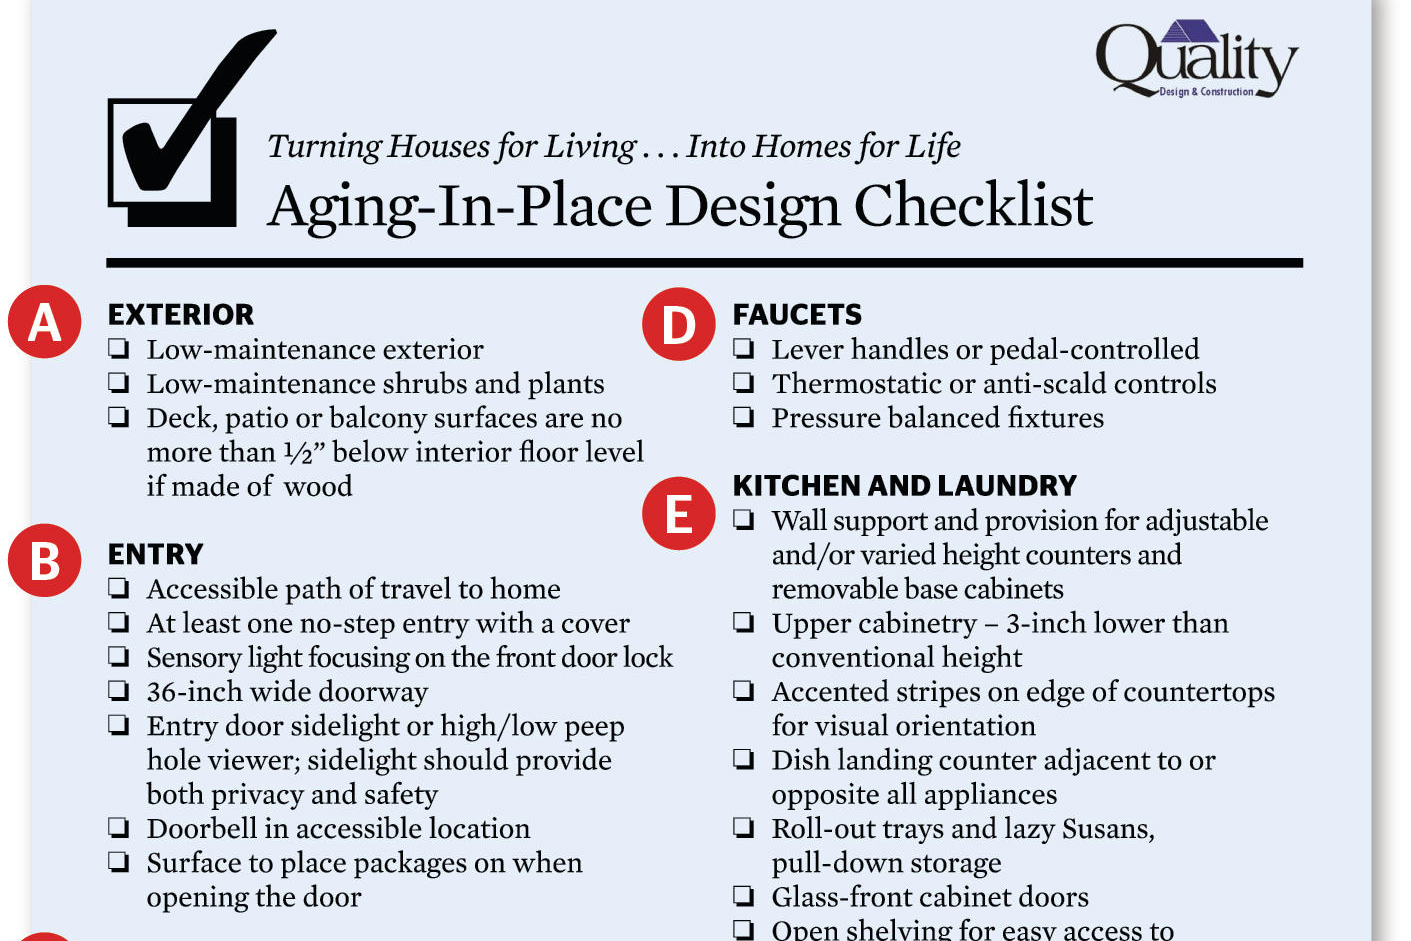 Stay right there universal design checklist remodeling for Home design checklist